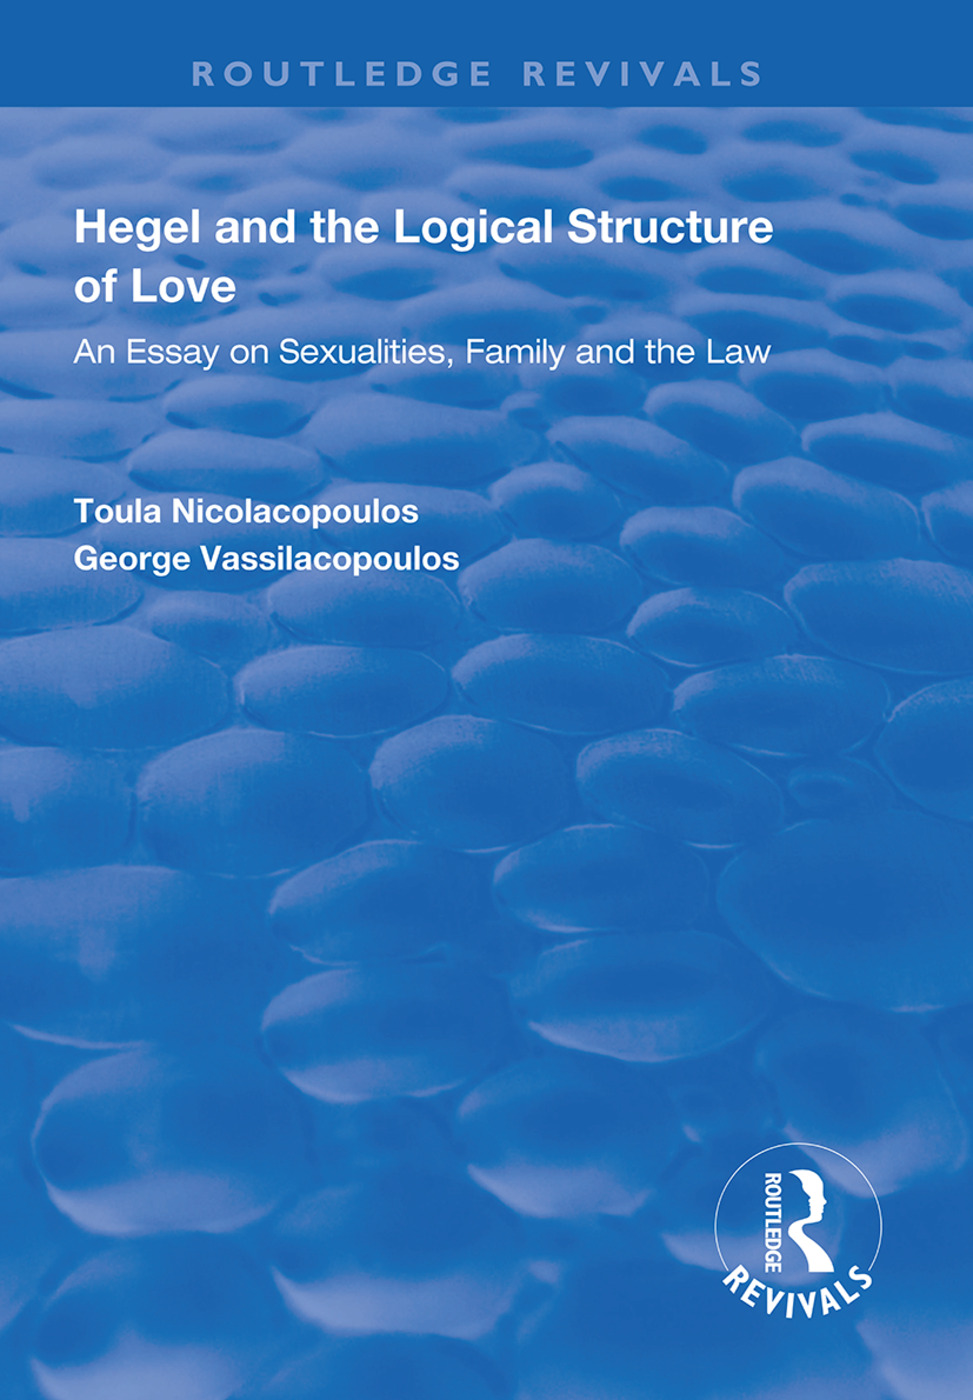 Hegel and the Logical Structure of Love: An Essay on Sexualities, Family and the Law book cover